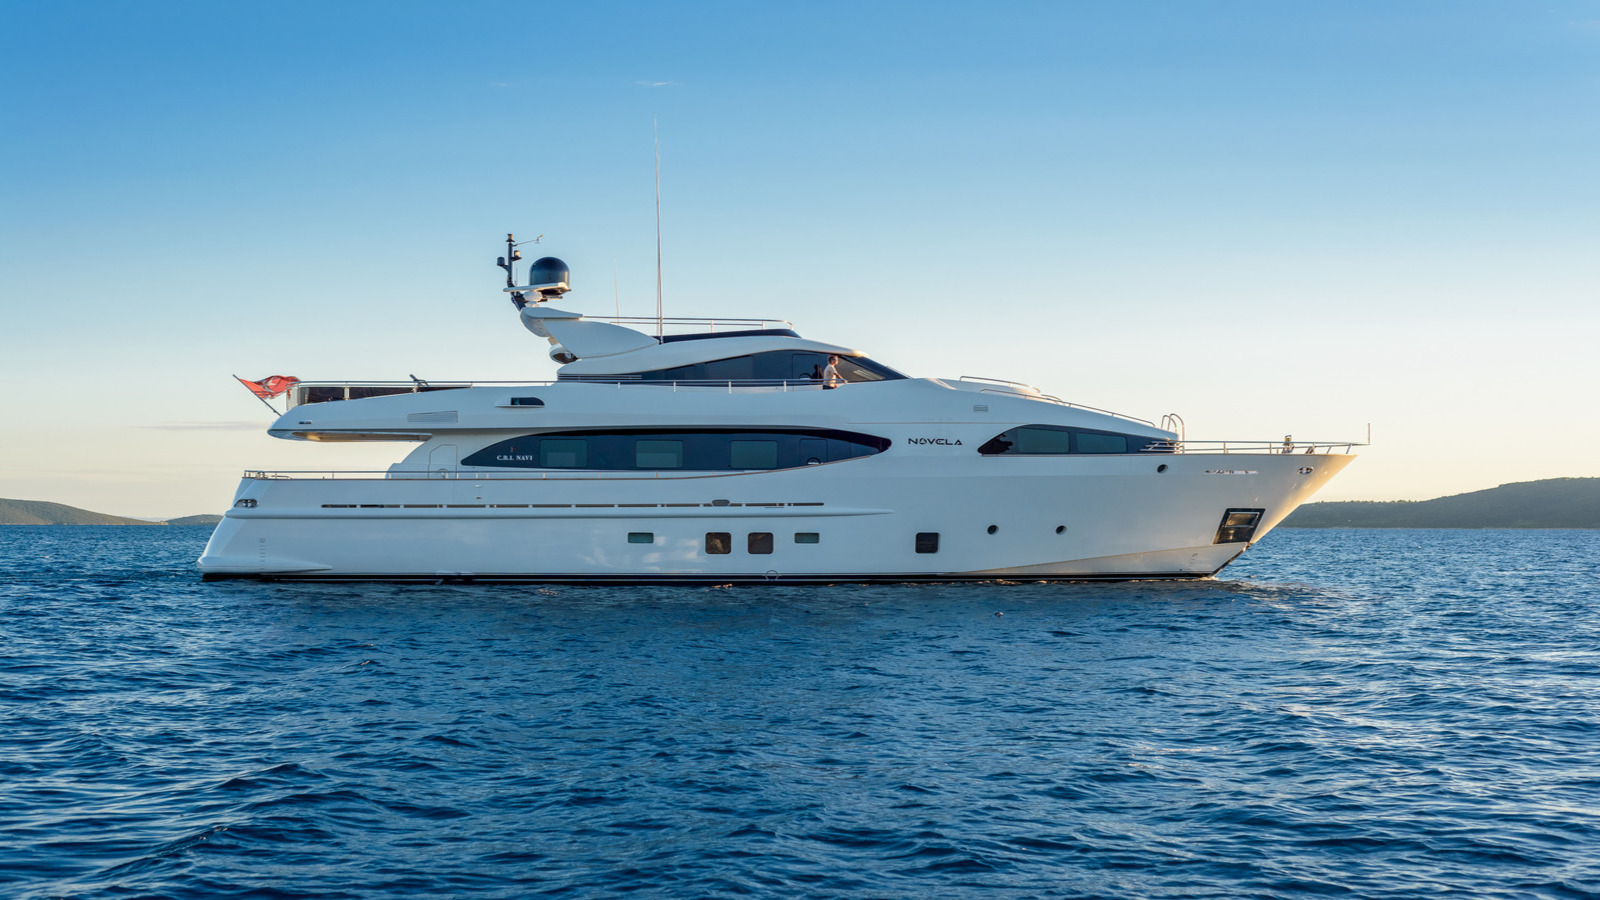 NOVELA Yacht for Sale - IYC